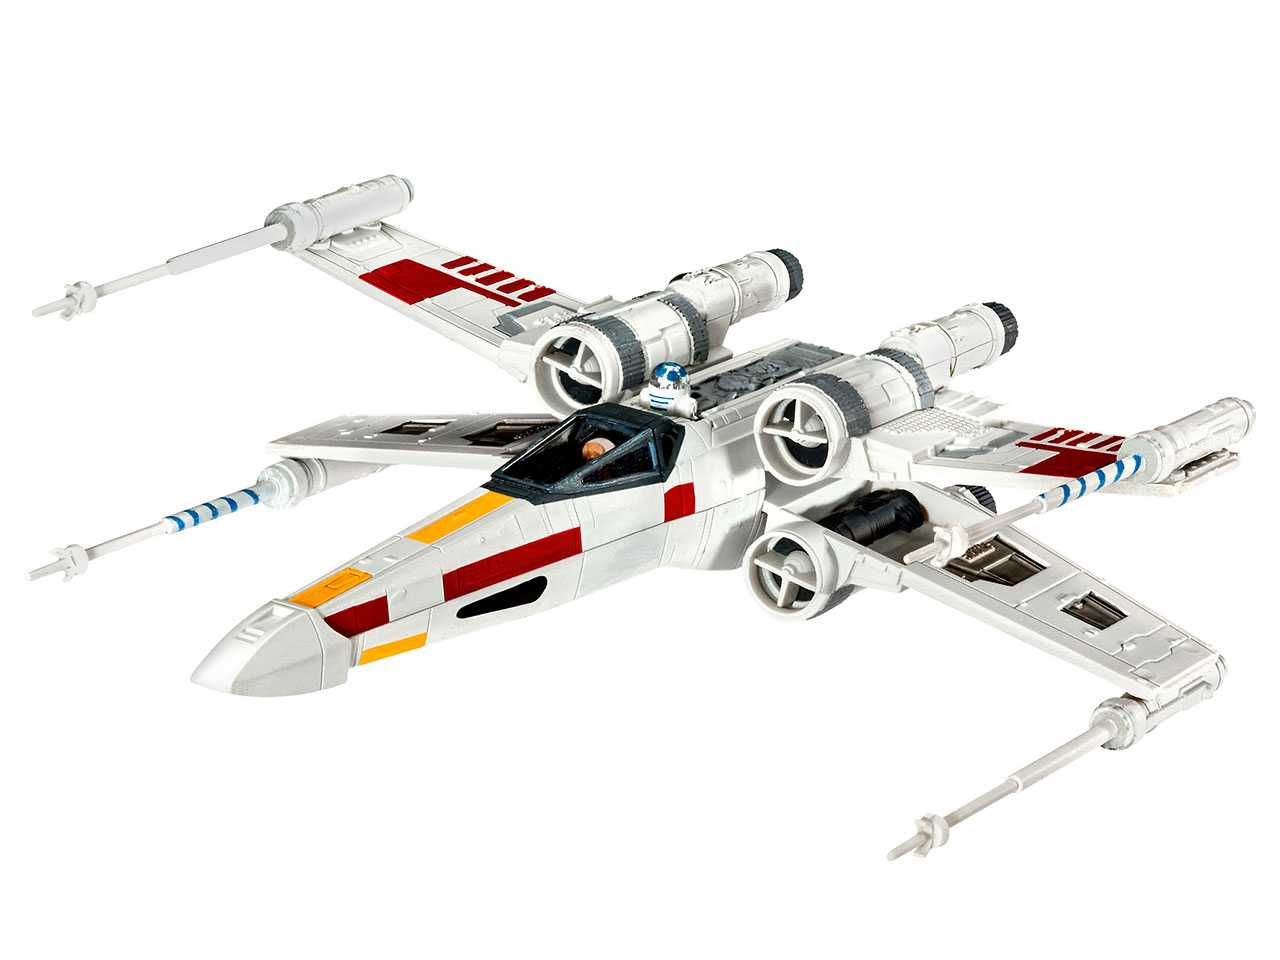 1:112 X-wing Fighter